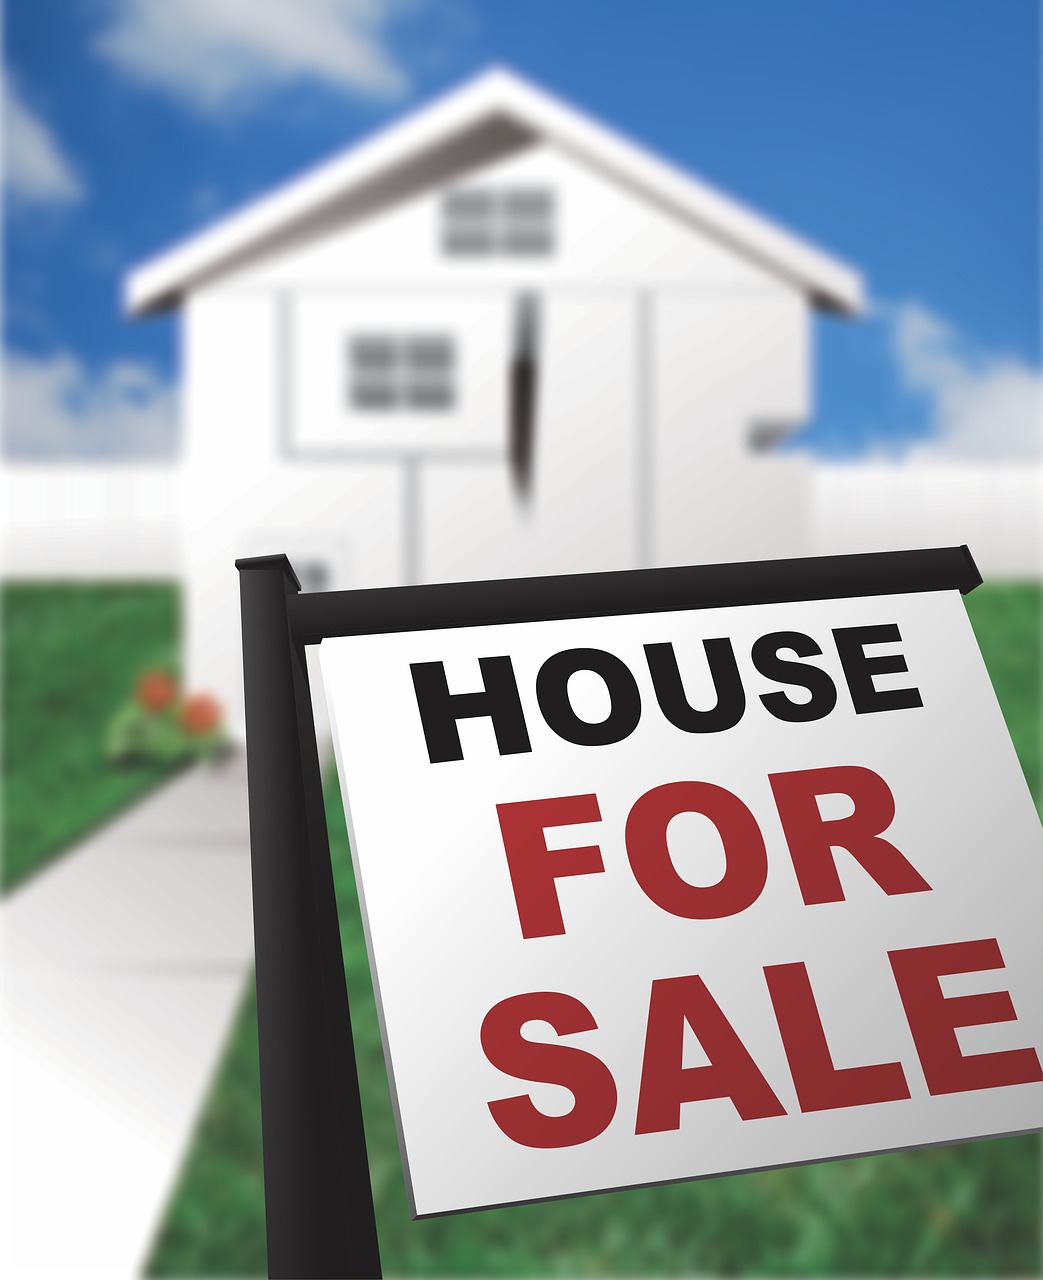 Selling your home? Price it correctly up front.